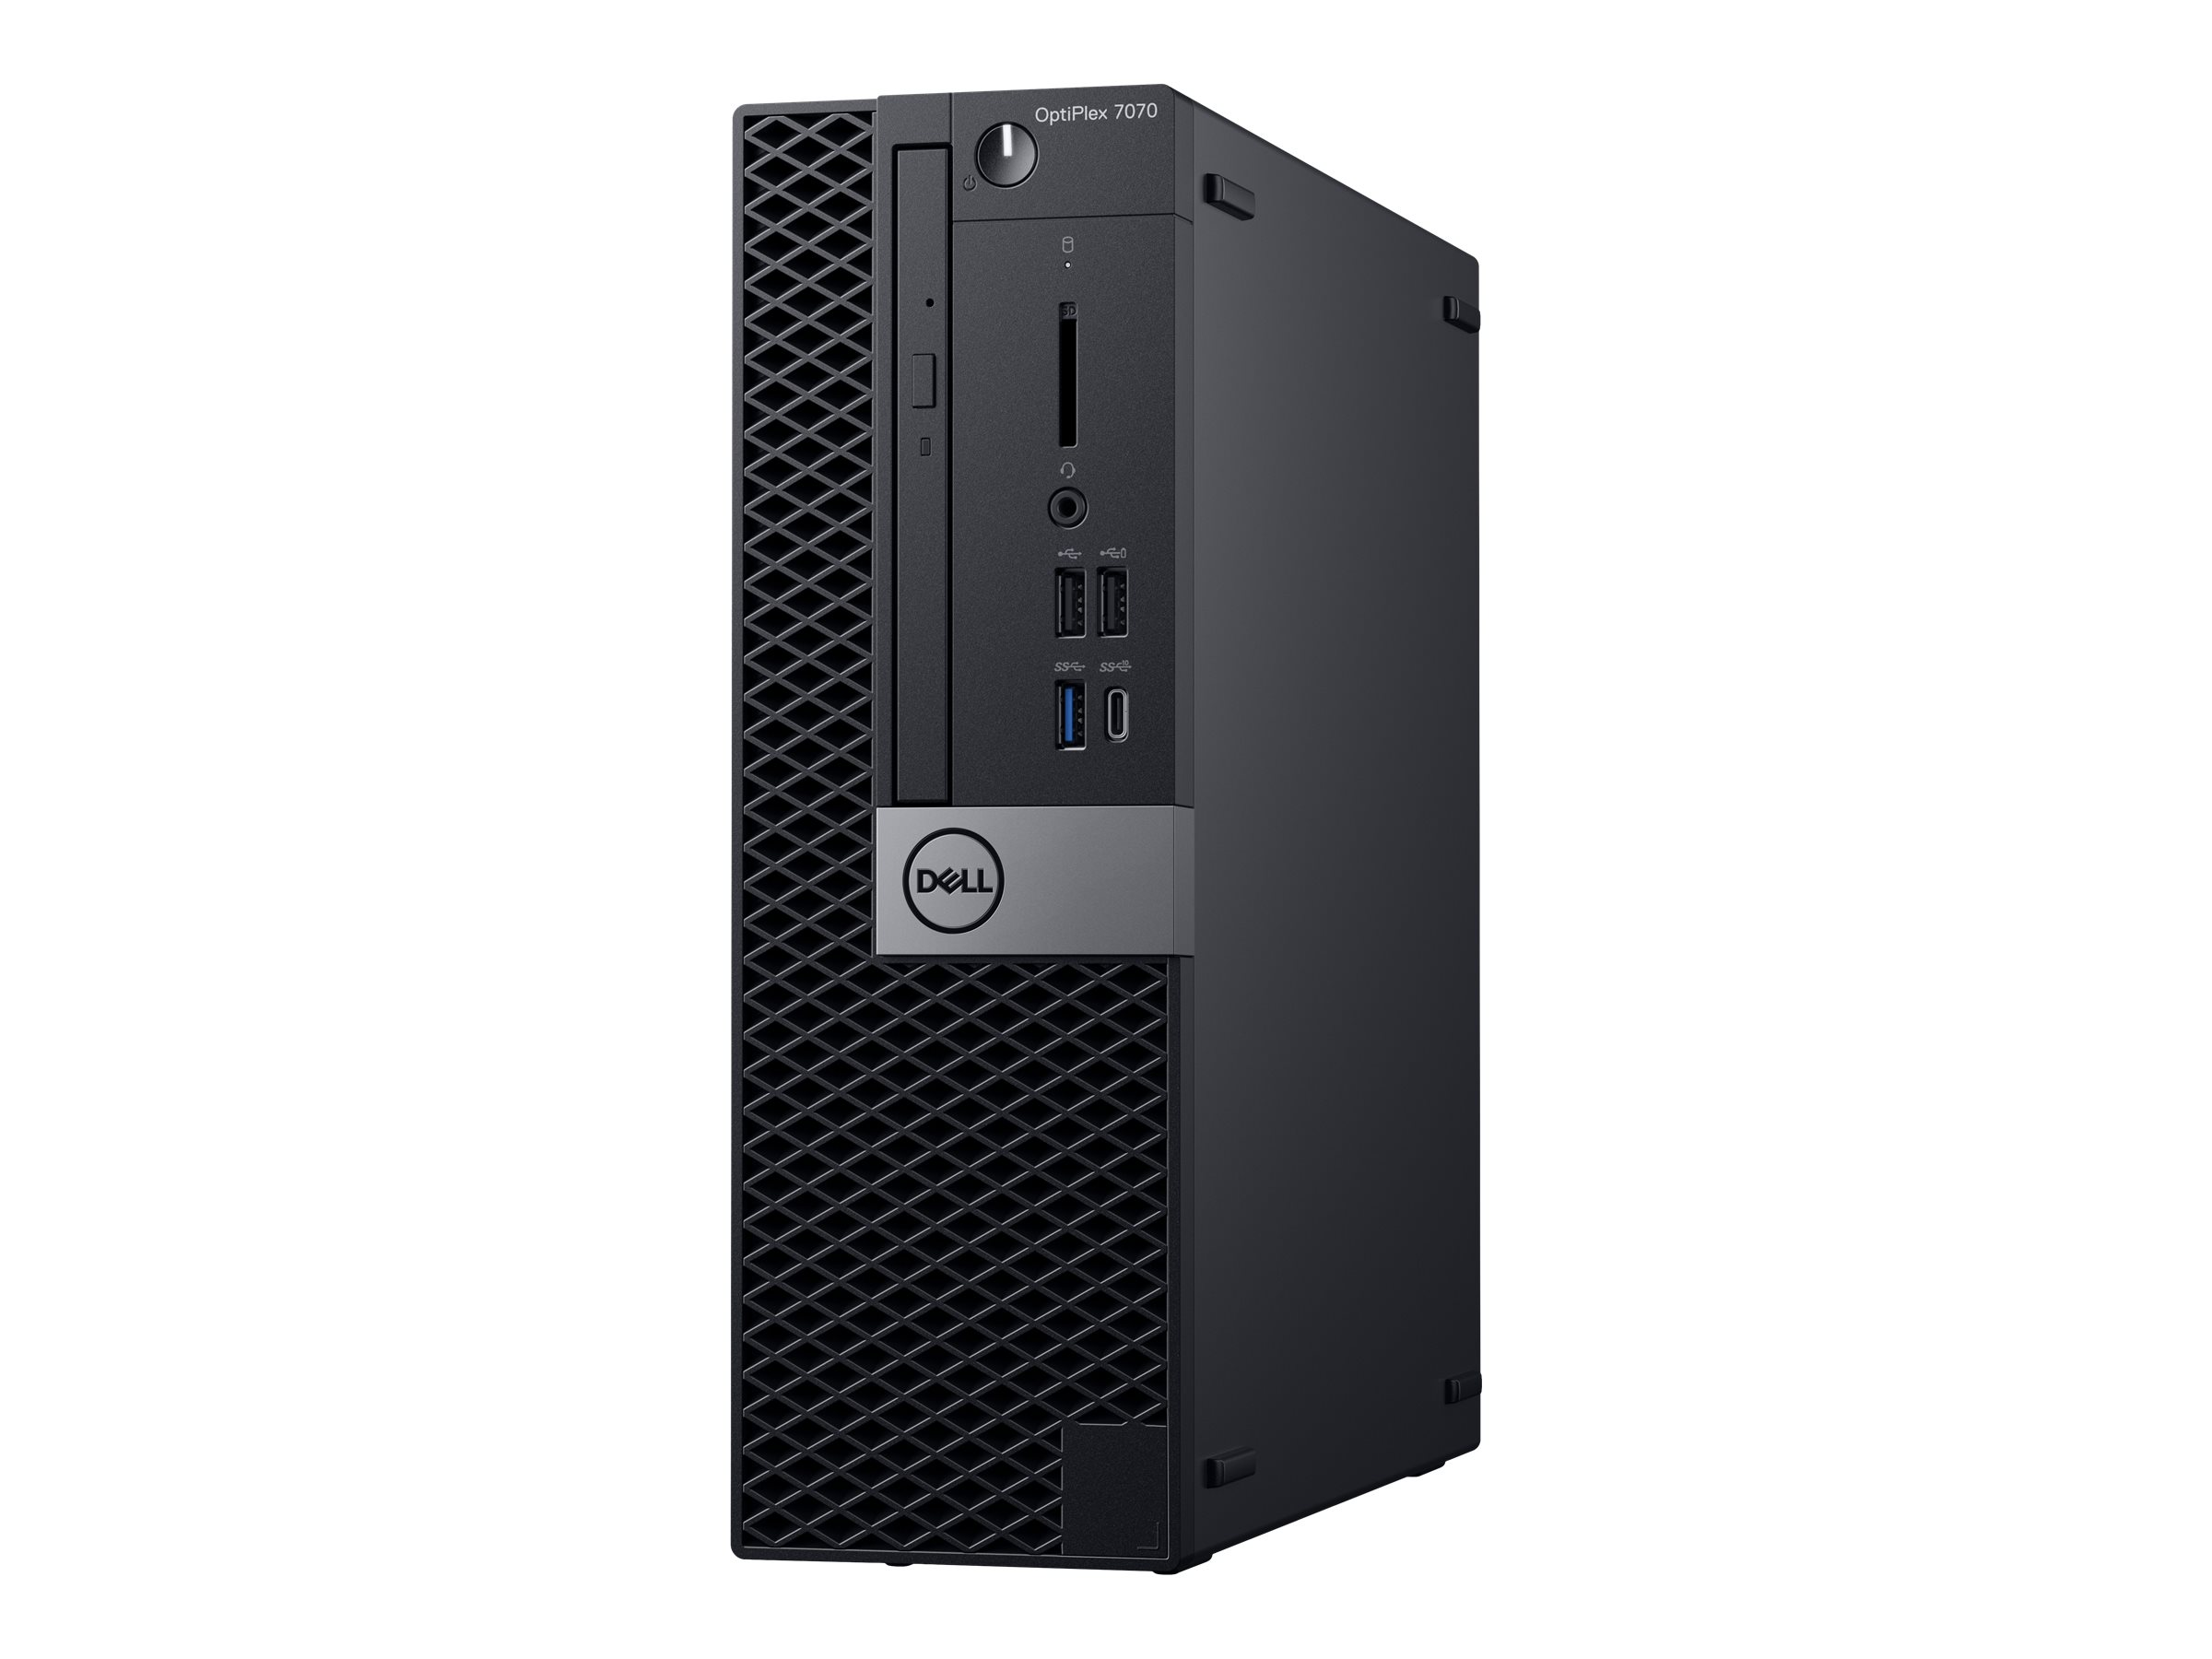 Dell OptiPlex 7070 - SFF - Core i7 9700 3 GHz - 8 GB - 1 TB - with 3-year ProSupport Plus NBD